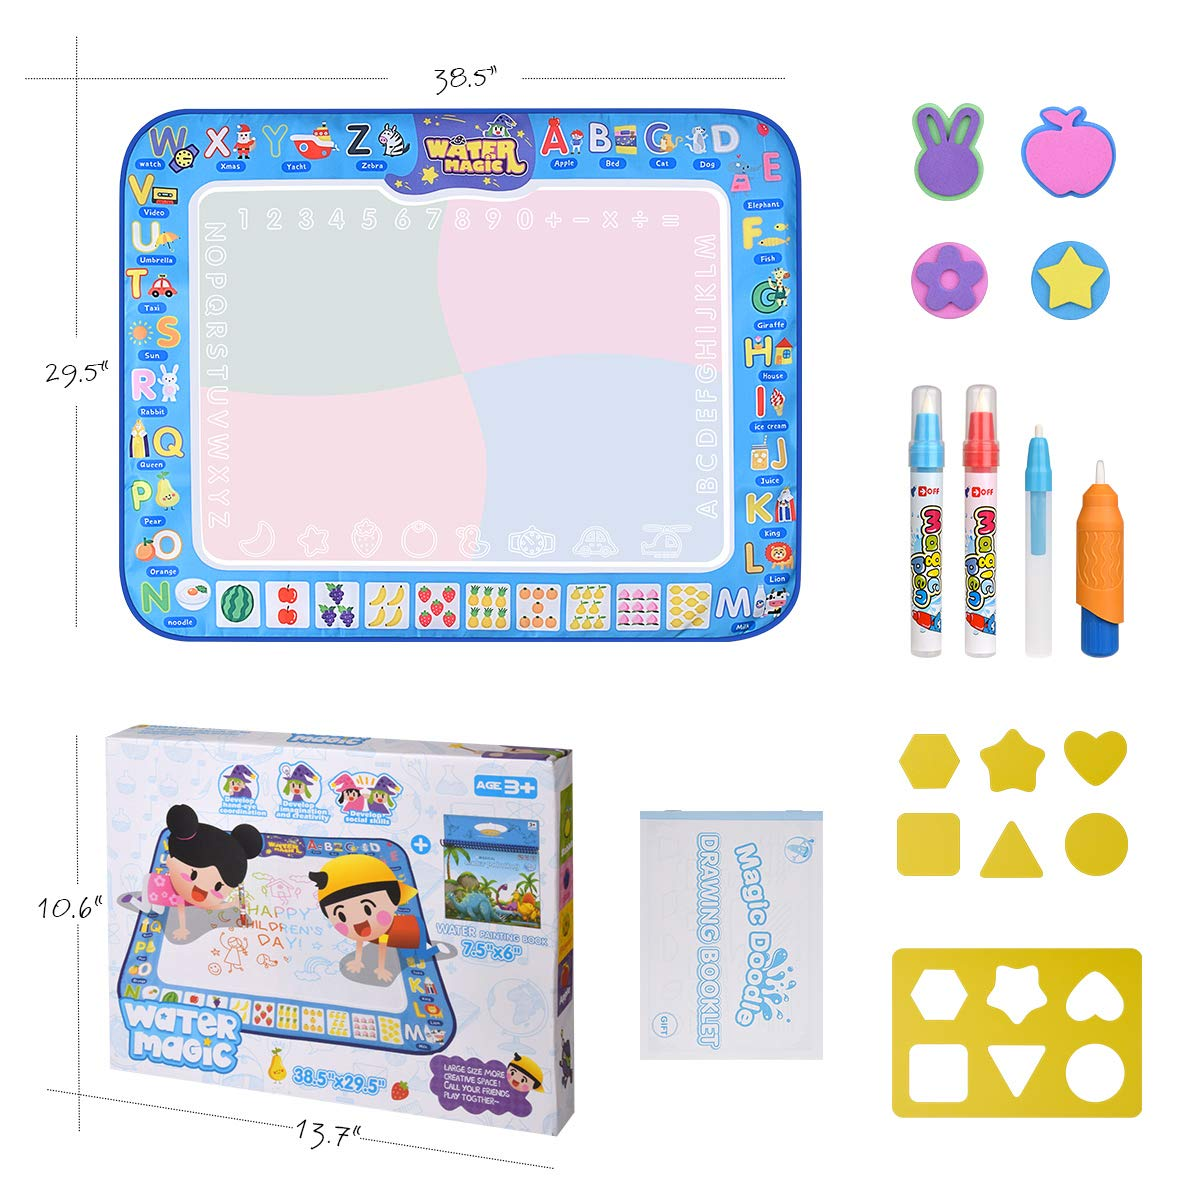 pipigo Water Doodle Mat Large Size for 2-3 Kids 31.5 X 23.6 Kid Aqua Magic Drawing Mat Coloring Paint Pad for Toddlers with 4 Water Pens and 6 Models